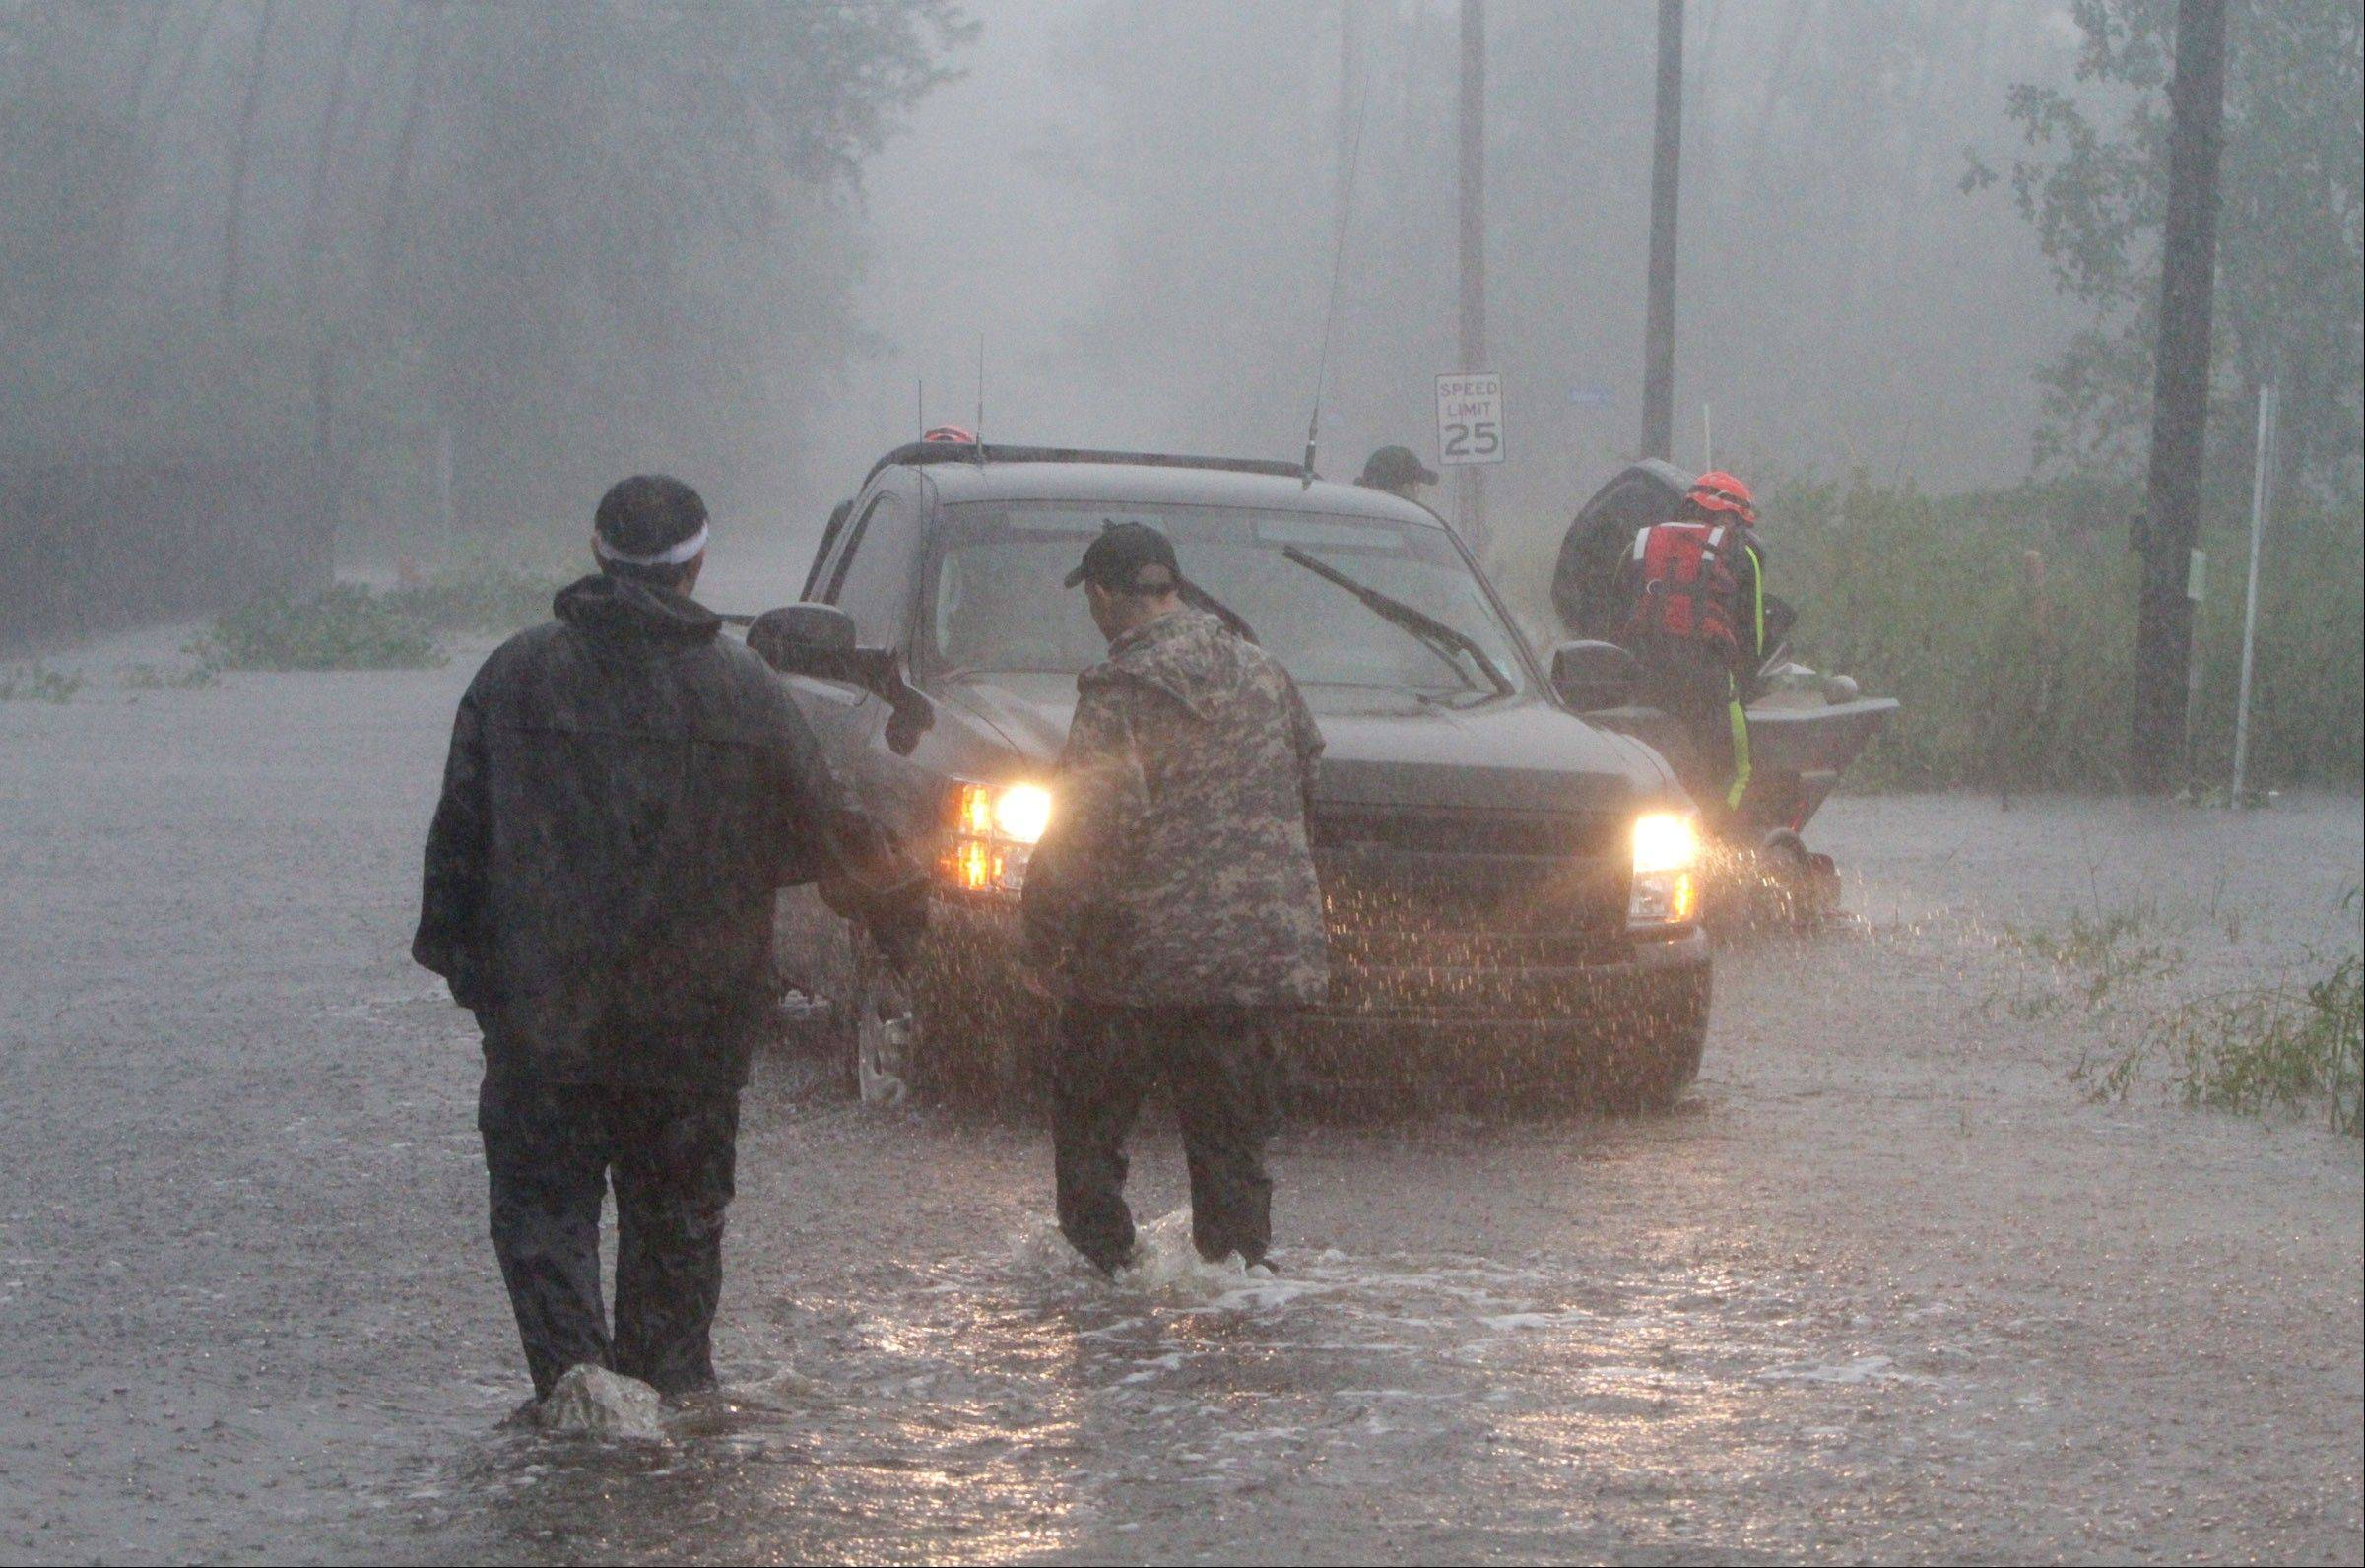 Members of the Swift Water Rescue Team launch a boat to rescue employees of WQRZ radio station in Shoreline Park area of Bay St. Louis, Miss., during Hurricane Isaac on Wednesday Aug. 29, 2012.